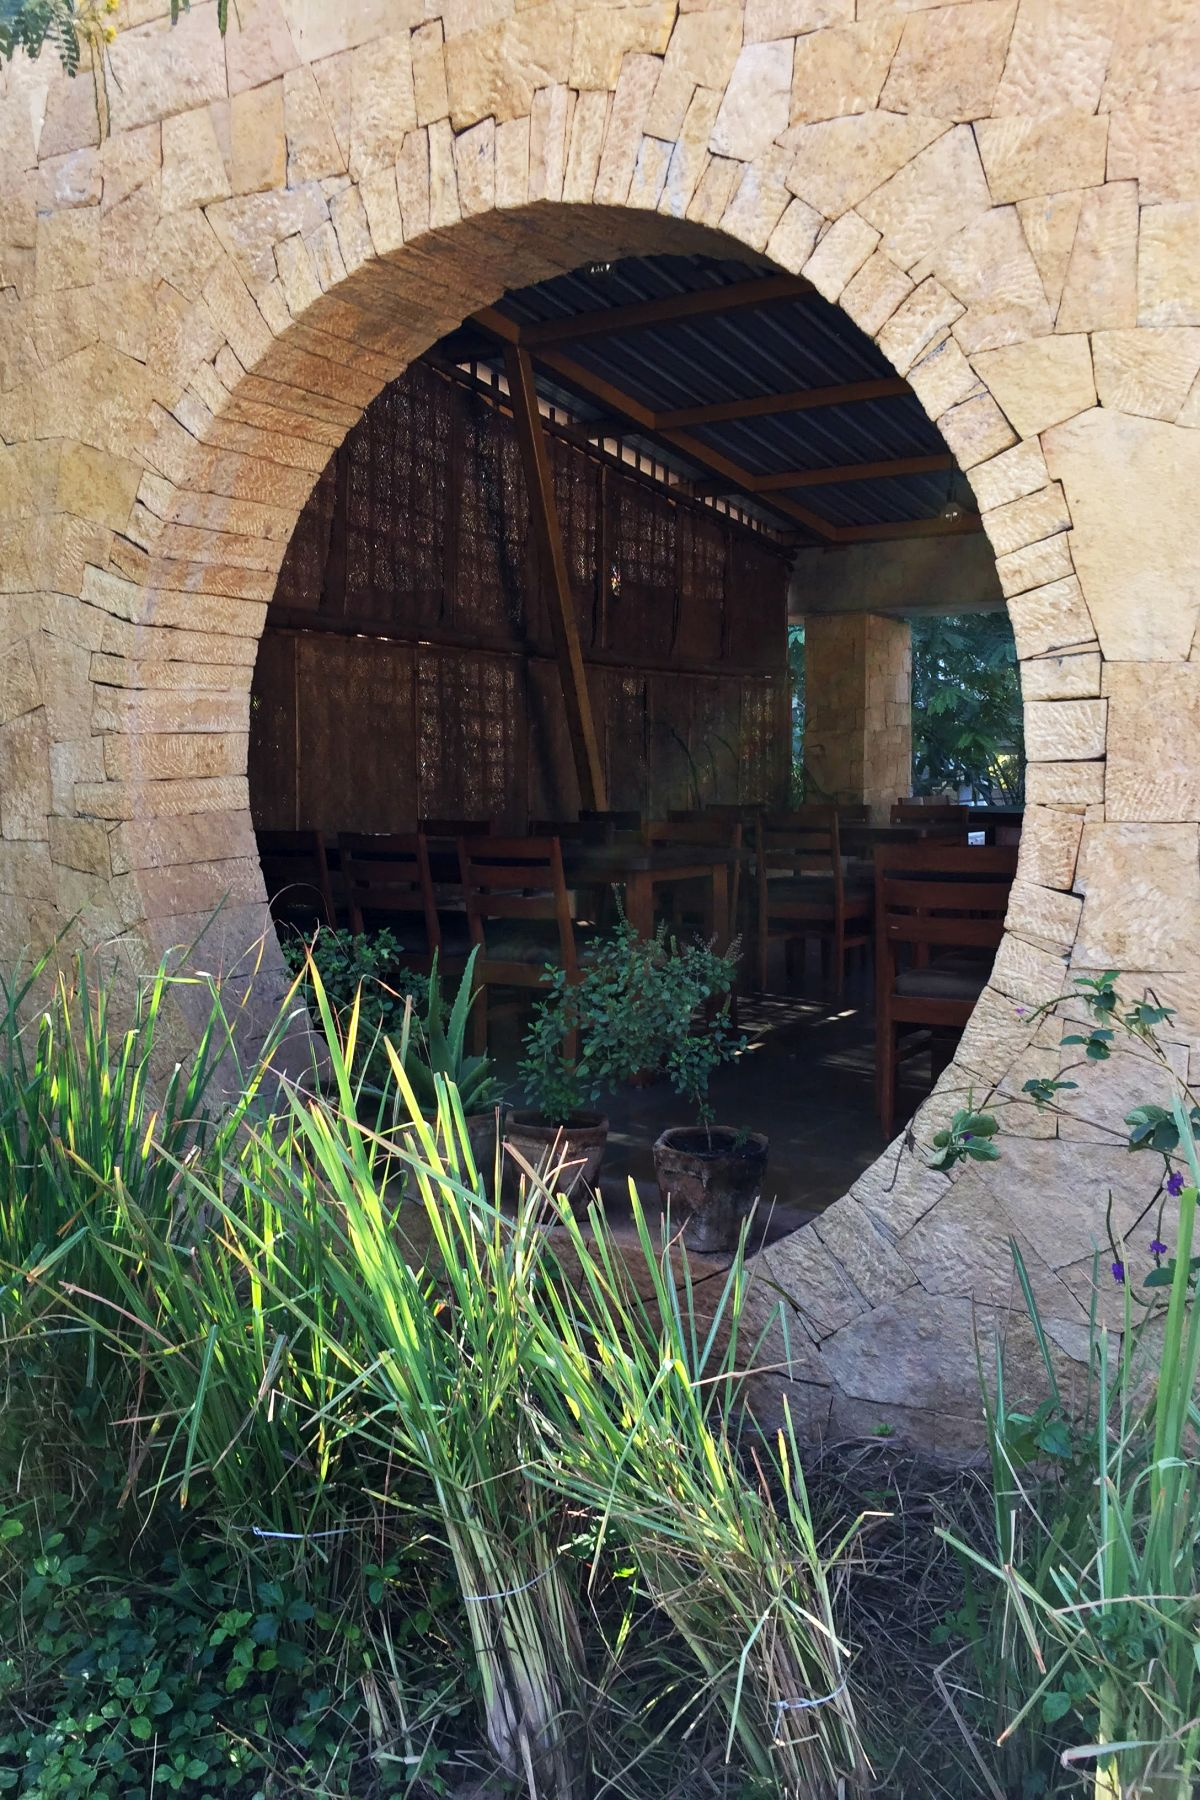 Kamala Cafe, Experiential journey in Nature's bliss, by Studio Praxis 48